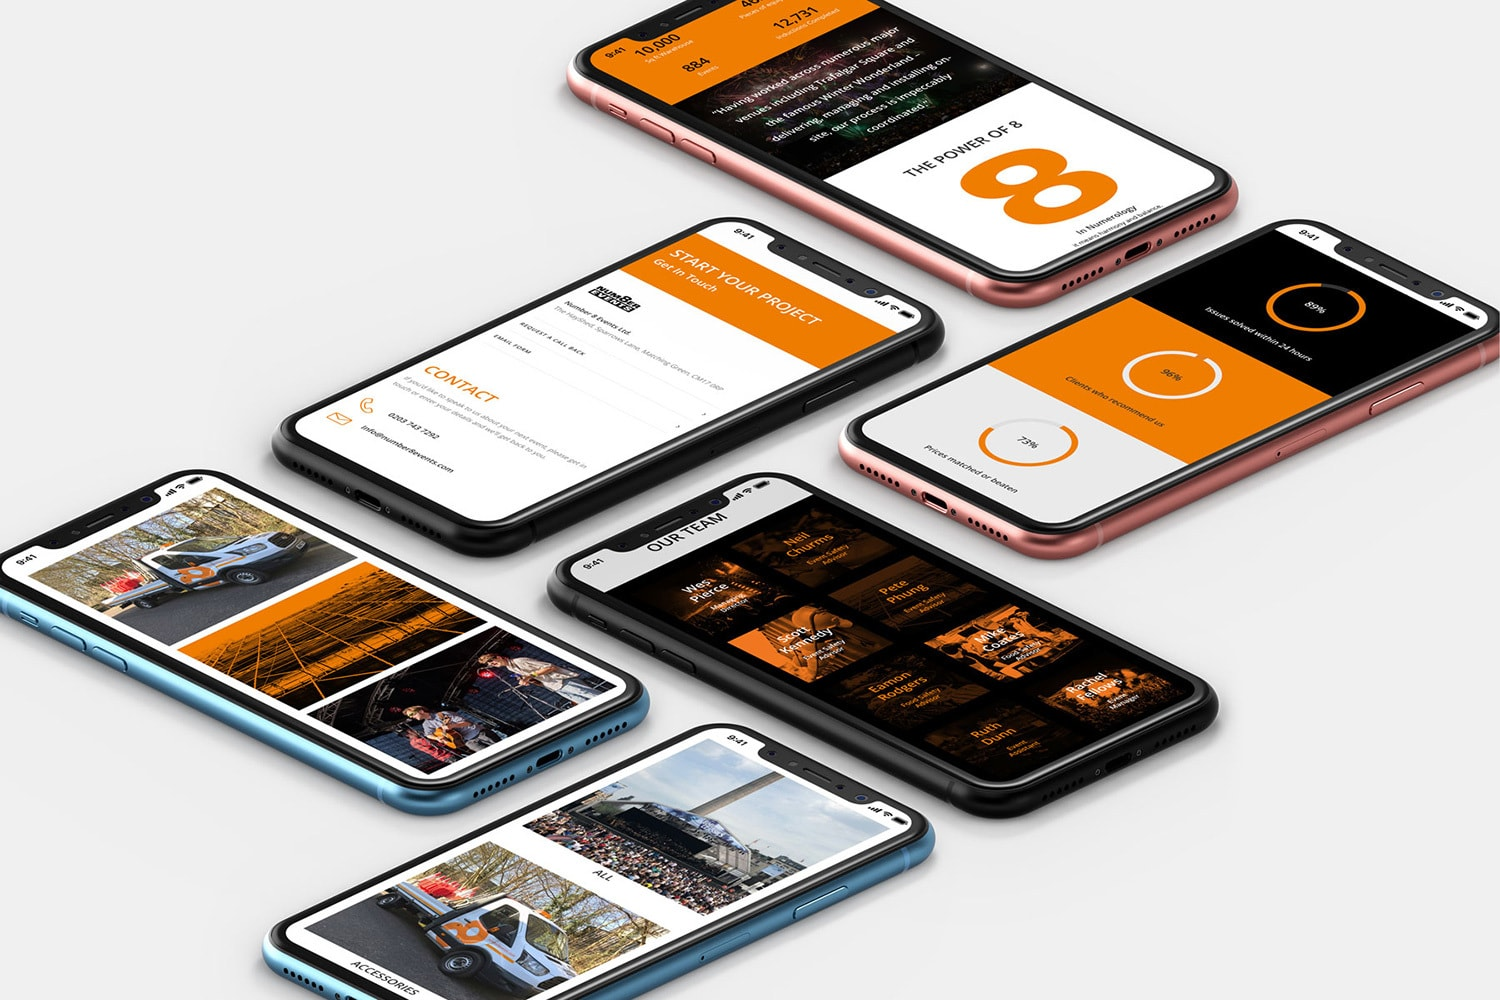 A group of mobile phones displaying pages from Number 8 Events responsive website design